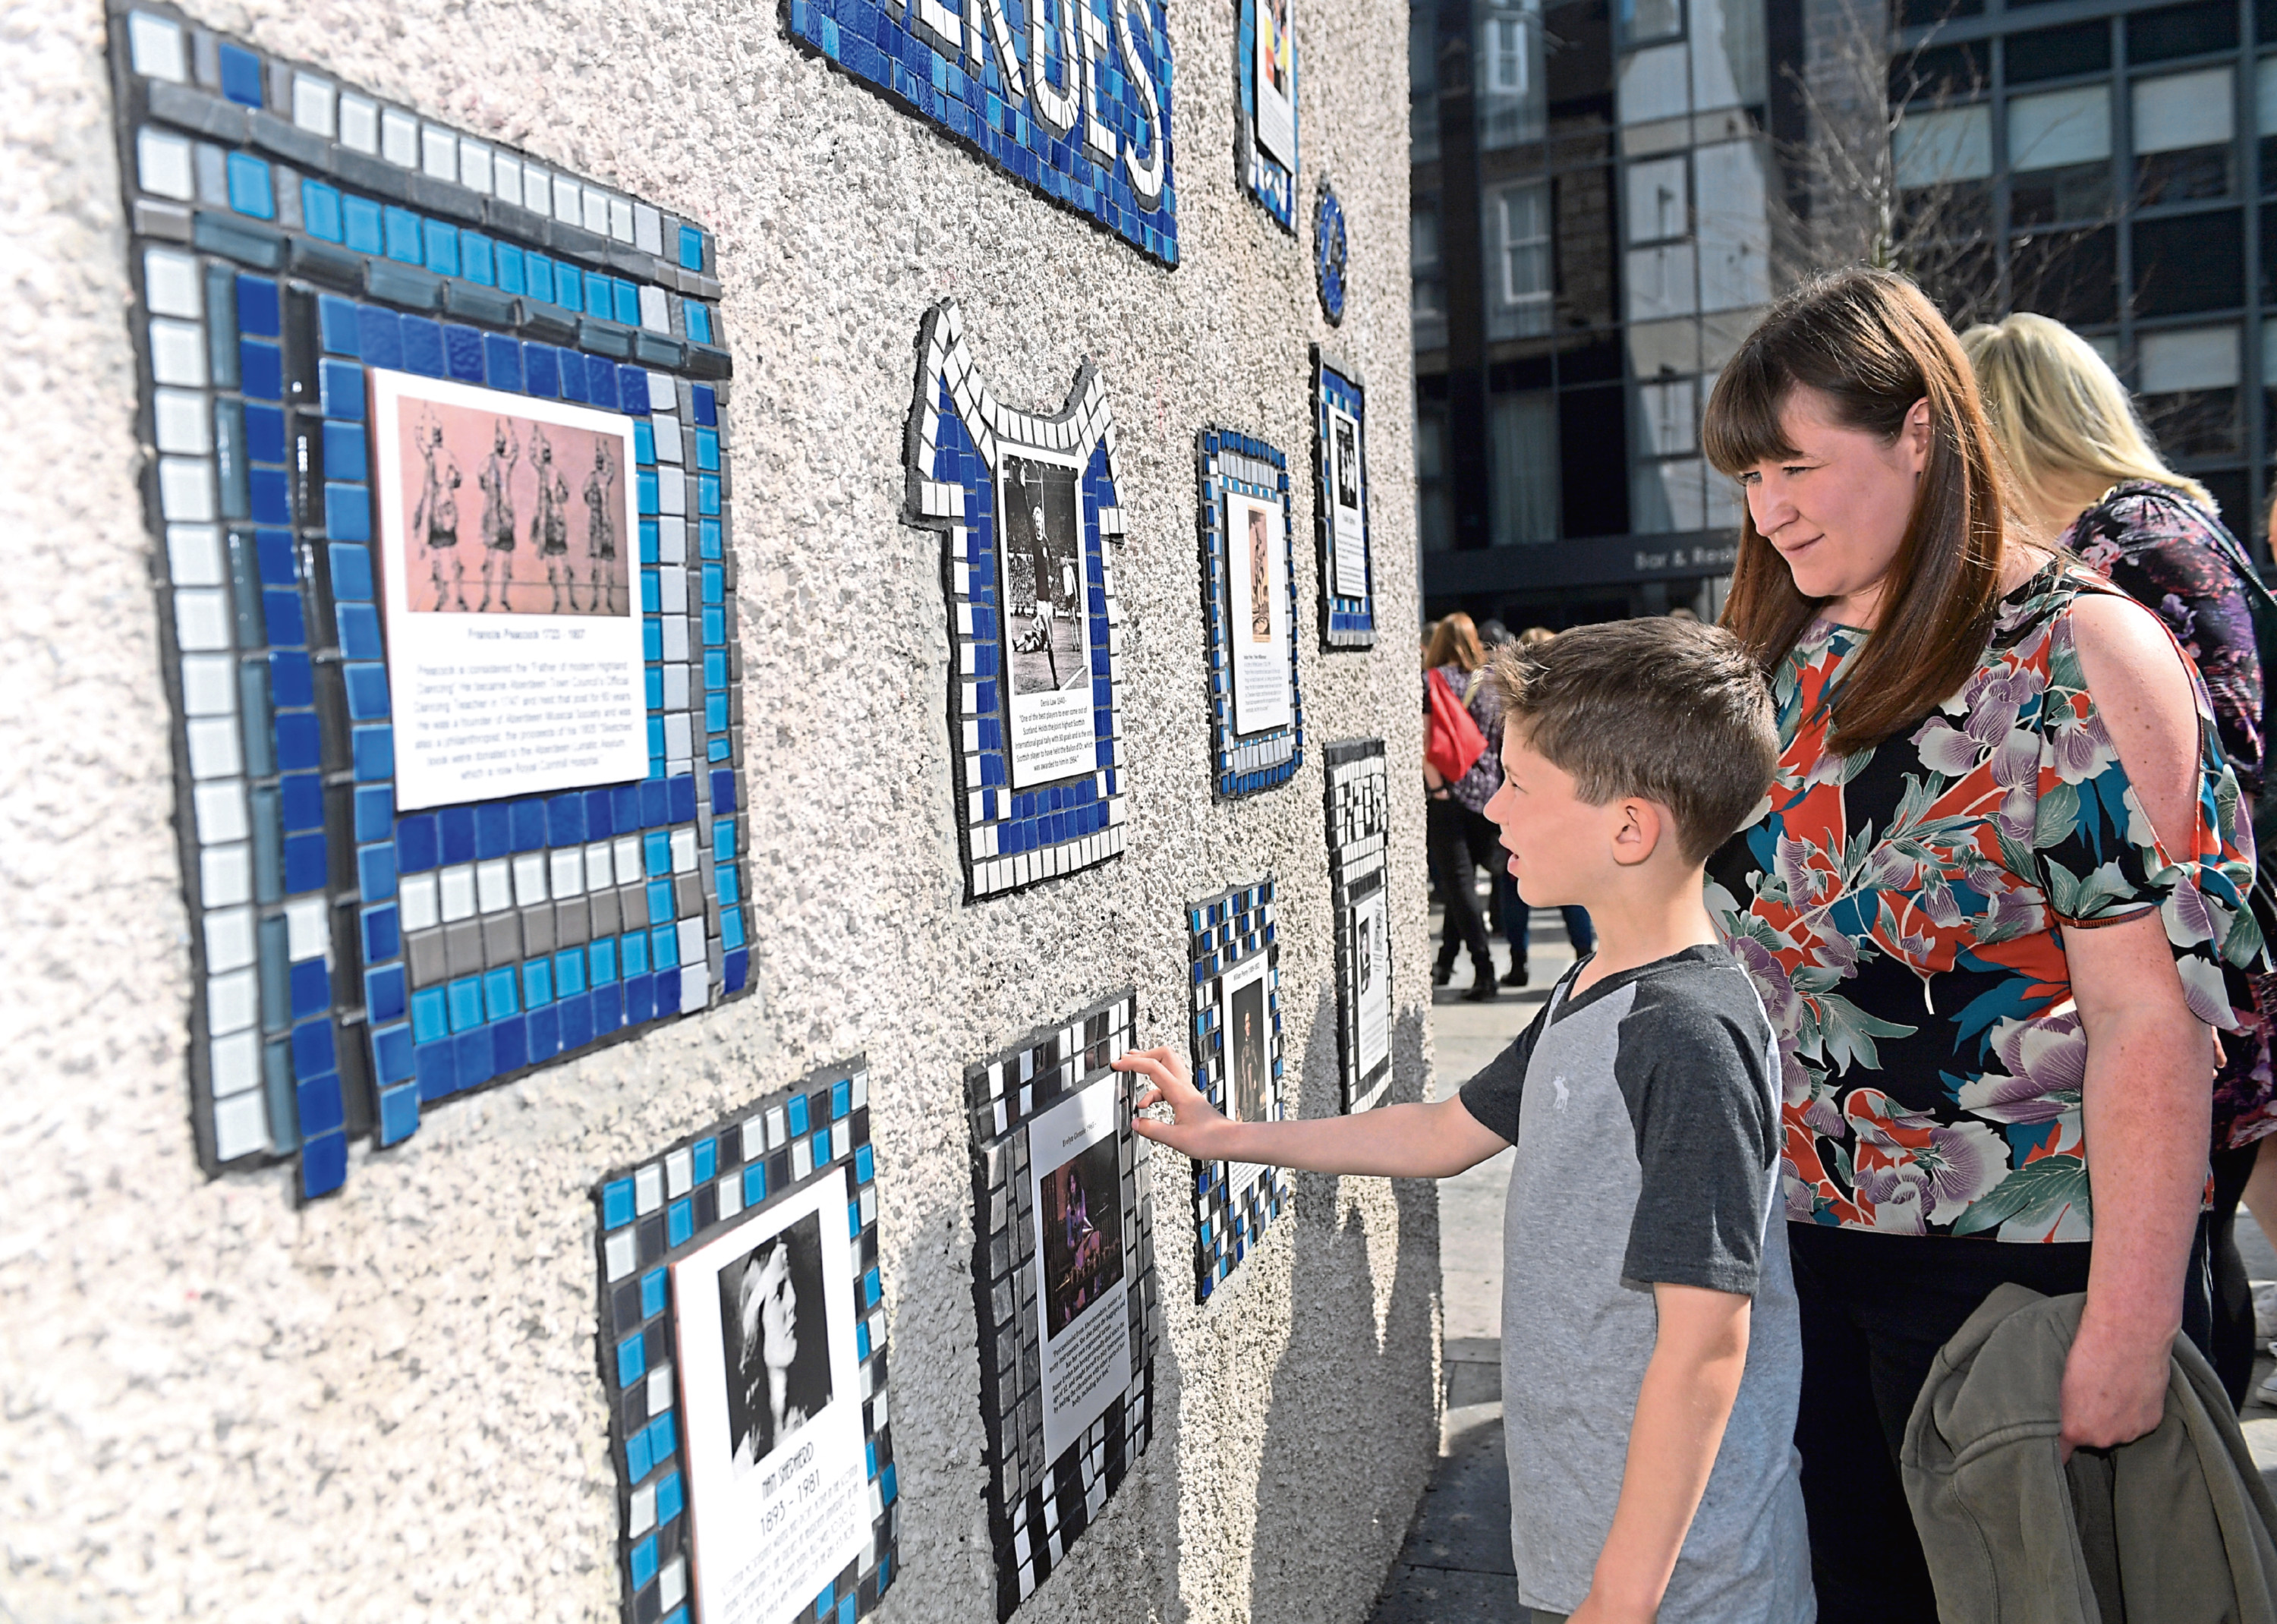 The street installations created by Nuart artists across the city have been attributed to a rise in civic pride